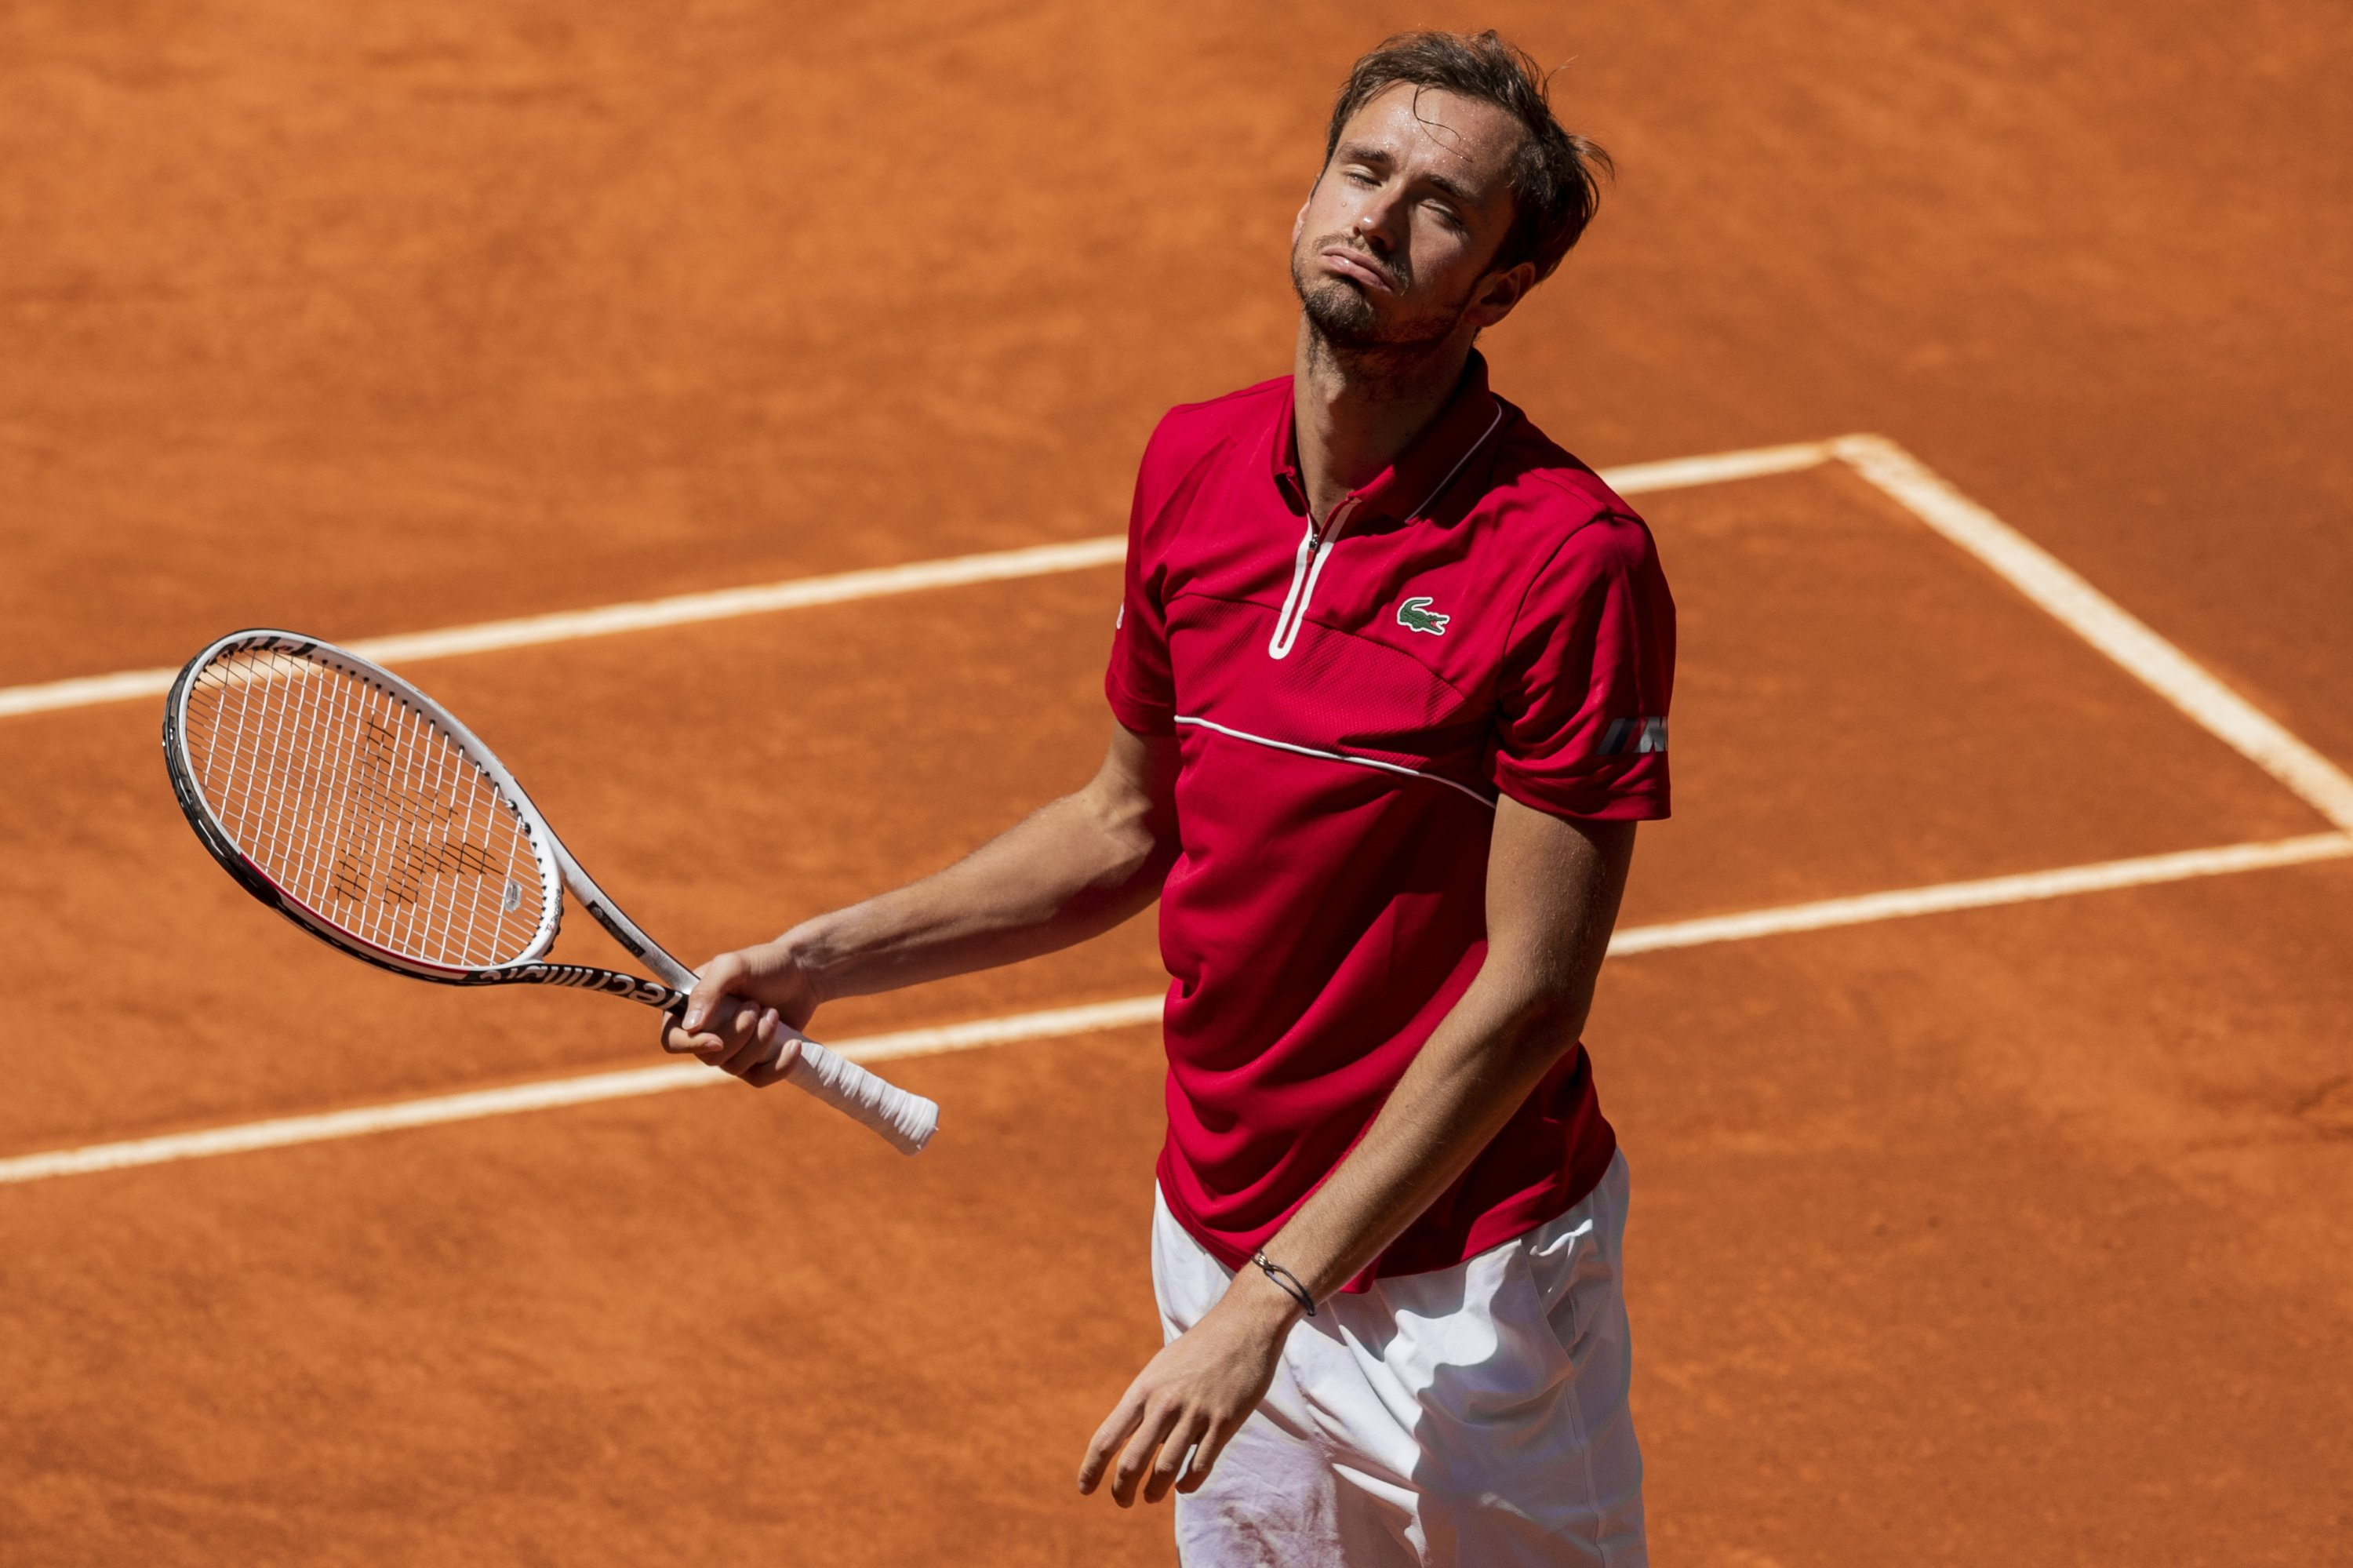 Russia's Daniil Medvedev reacts after missing a point against Chile's Cristian Garin during their Mutua Madrid Open match, Madrid, Spain, May 6, 2021. (AP Photo)